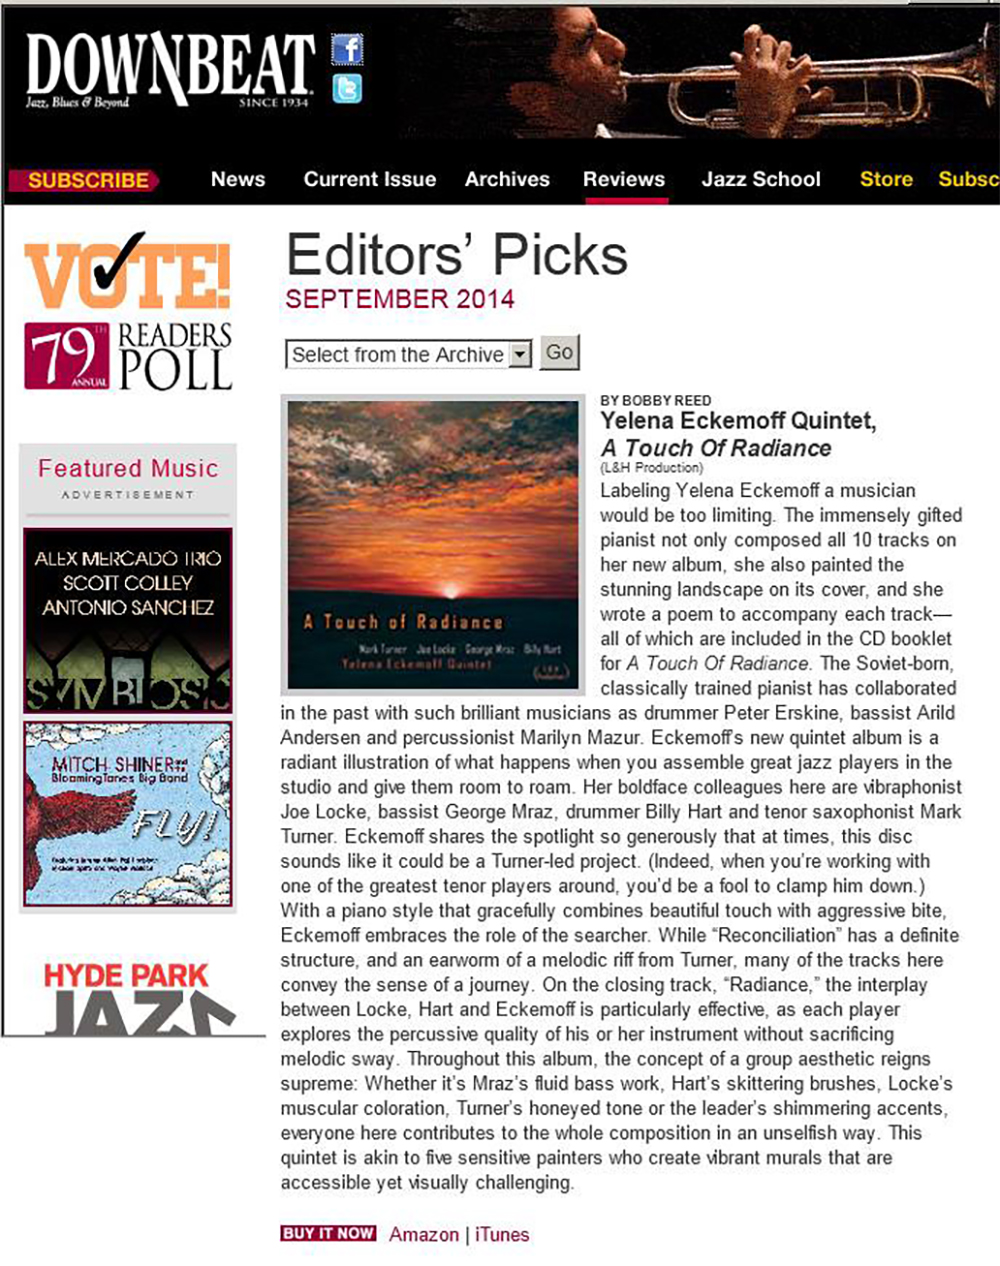 A Touch of Radiance editors pick in Downbeat image